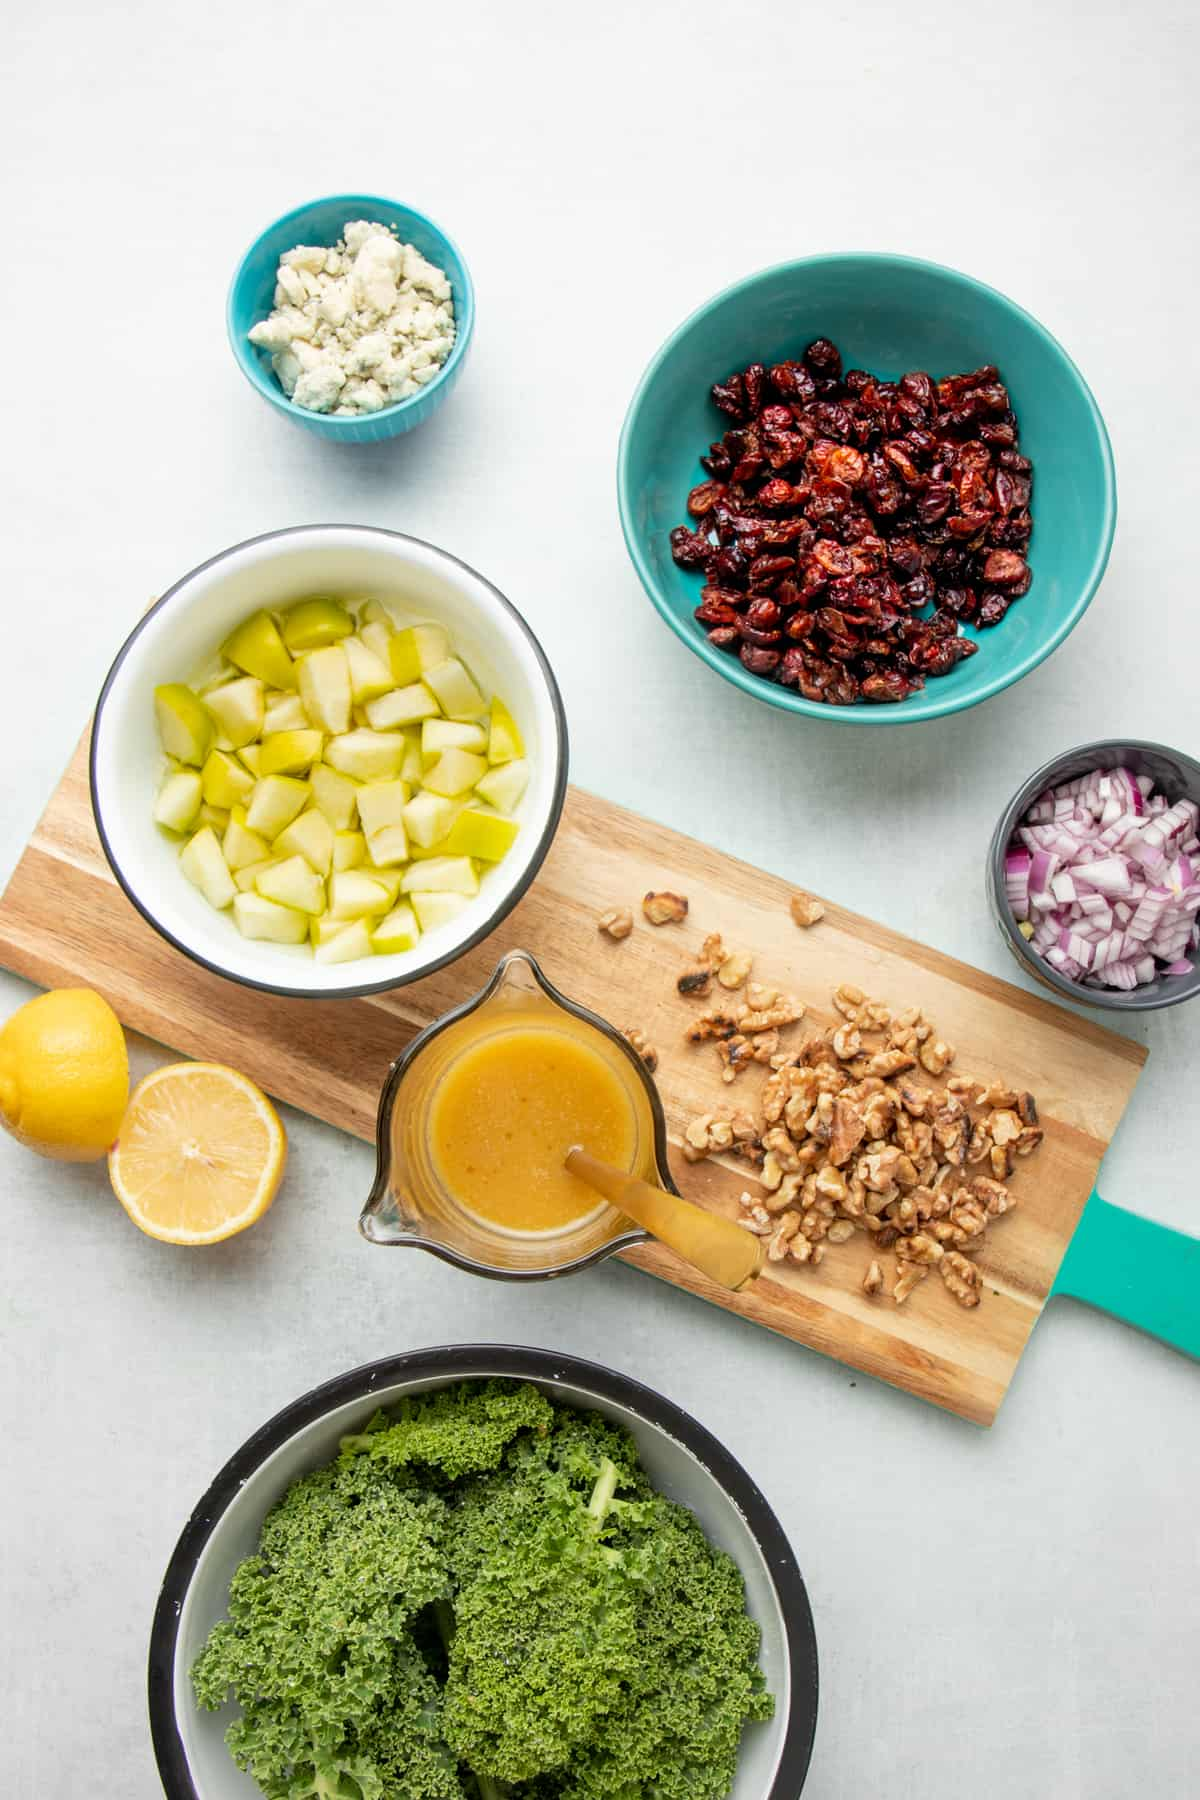 Ingredients for an apple walnut salad are arranged in individual teal and white bowls.